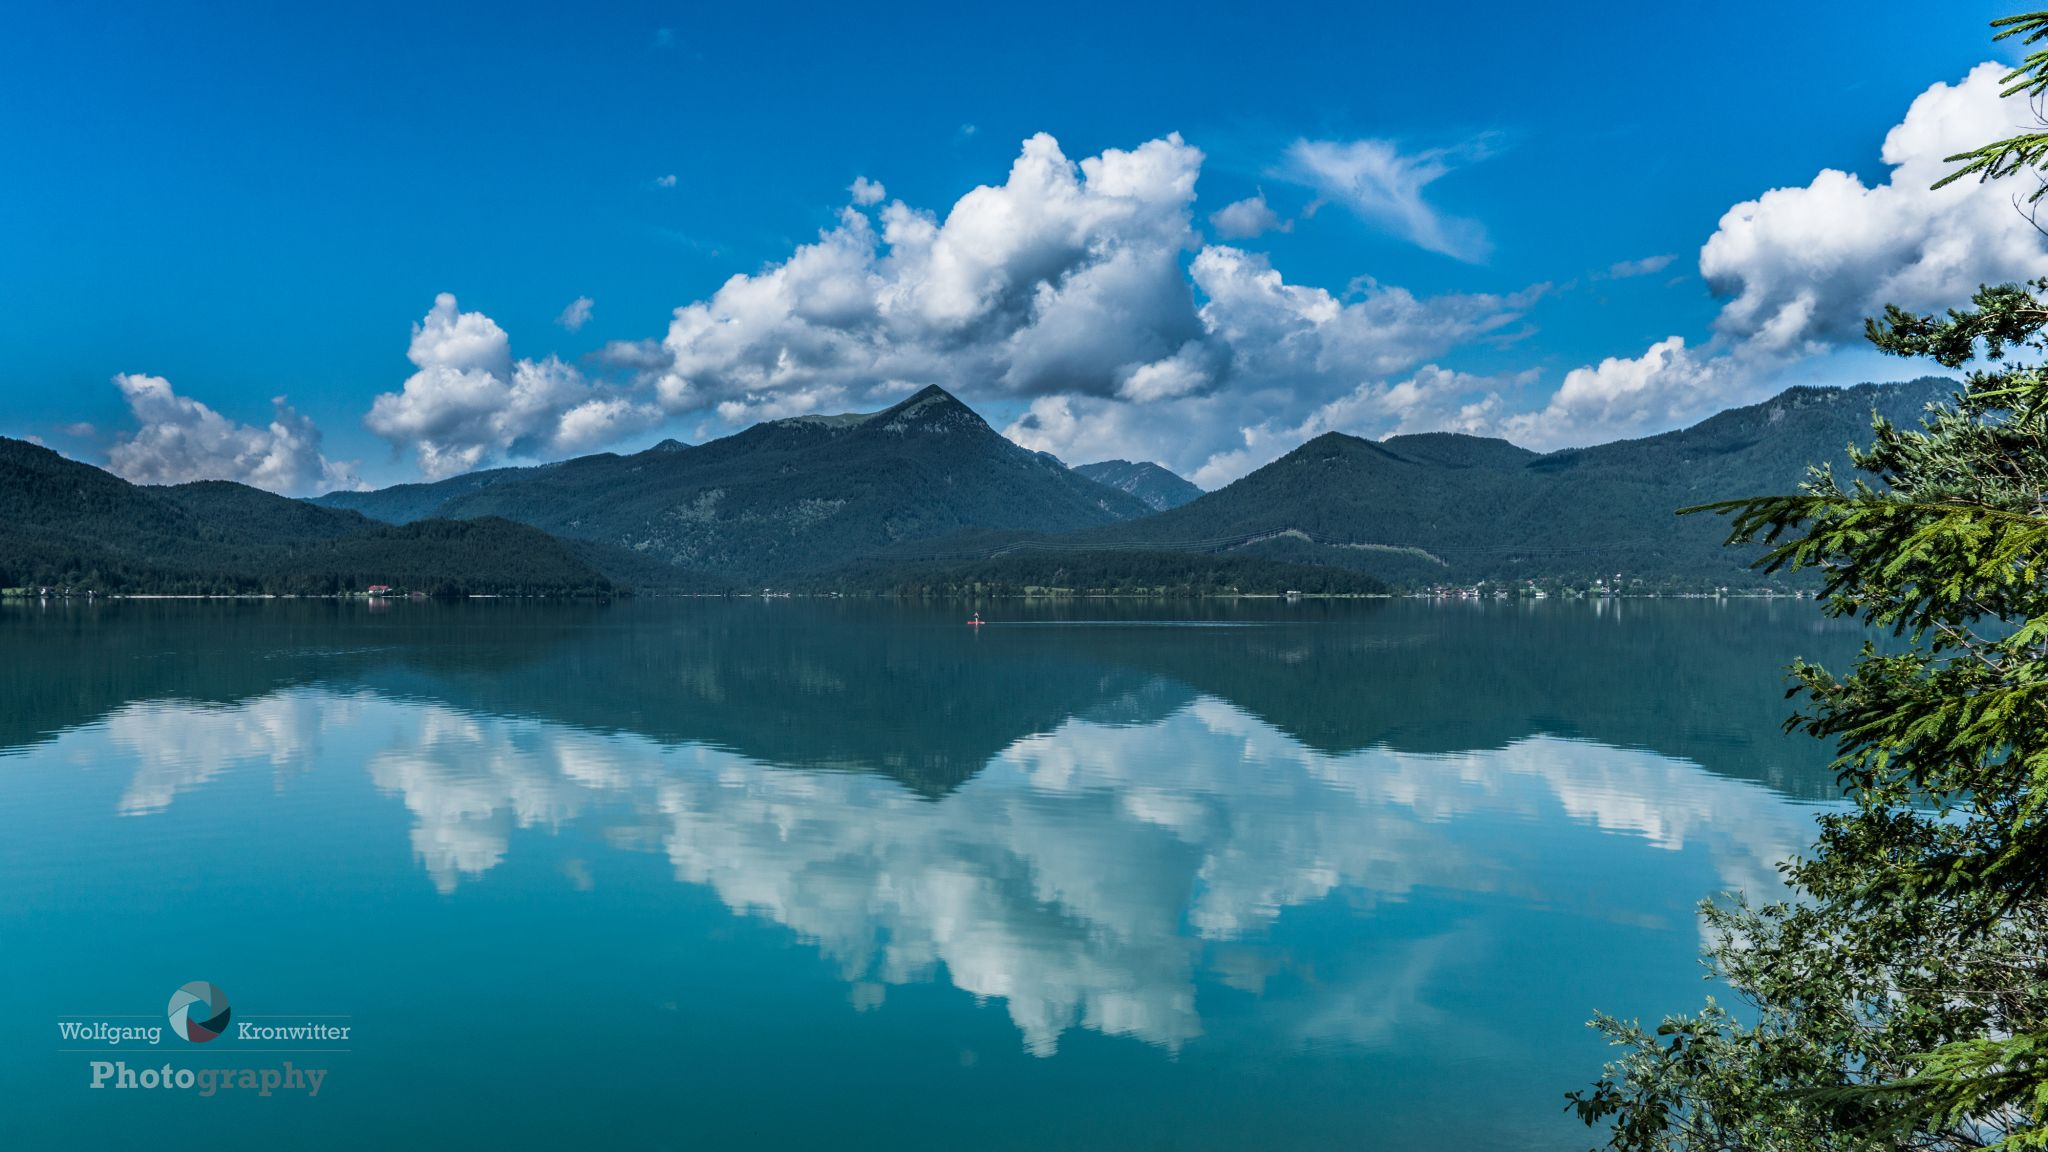 cristal clear Mountain lake in Bavaria, Germany